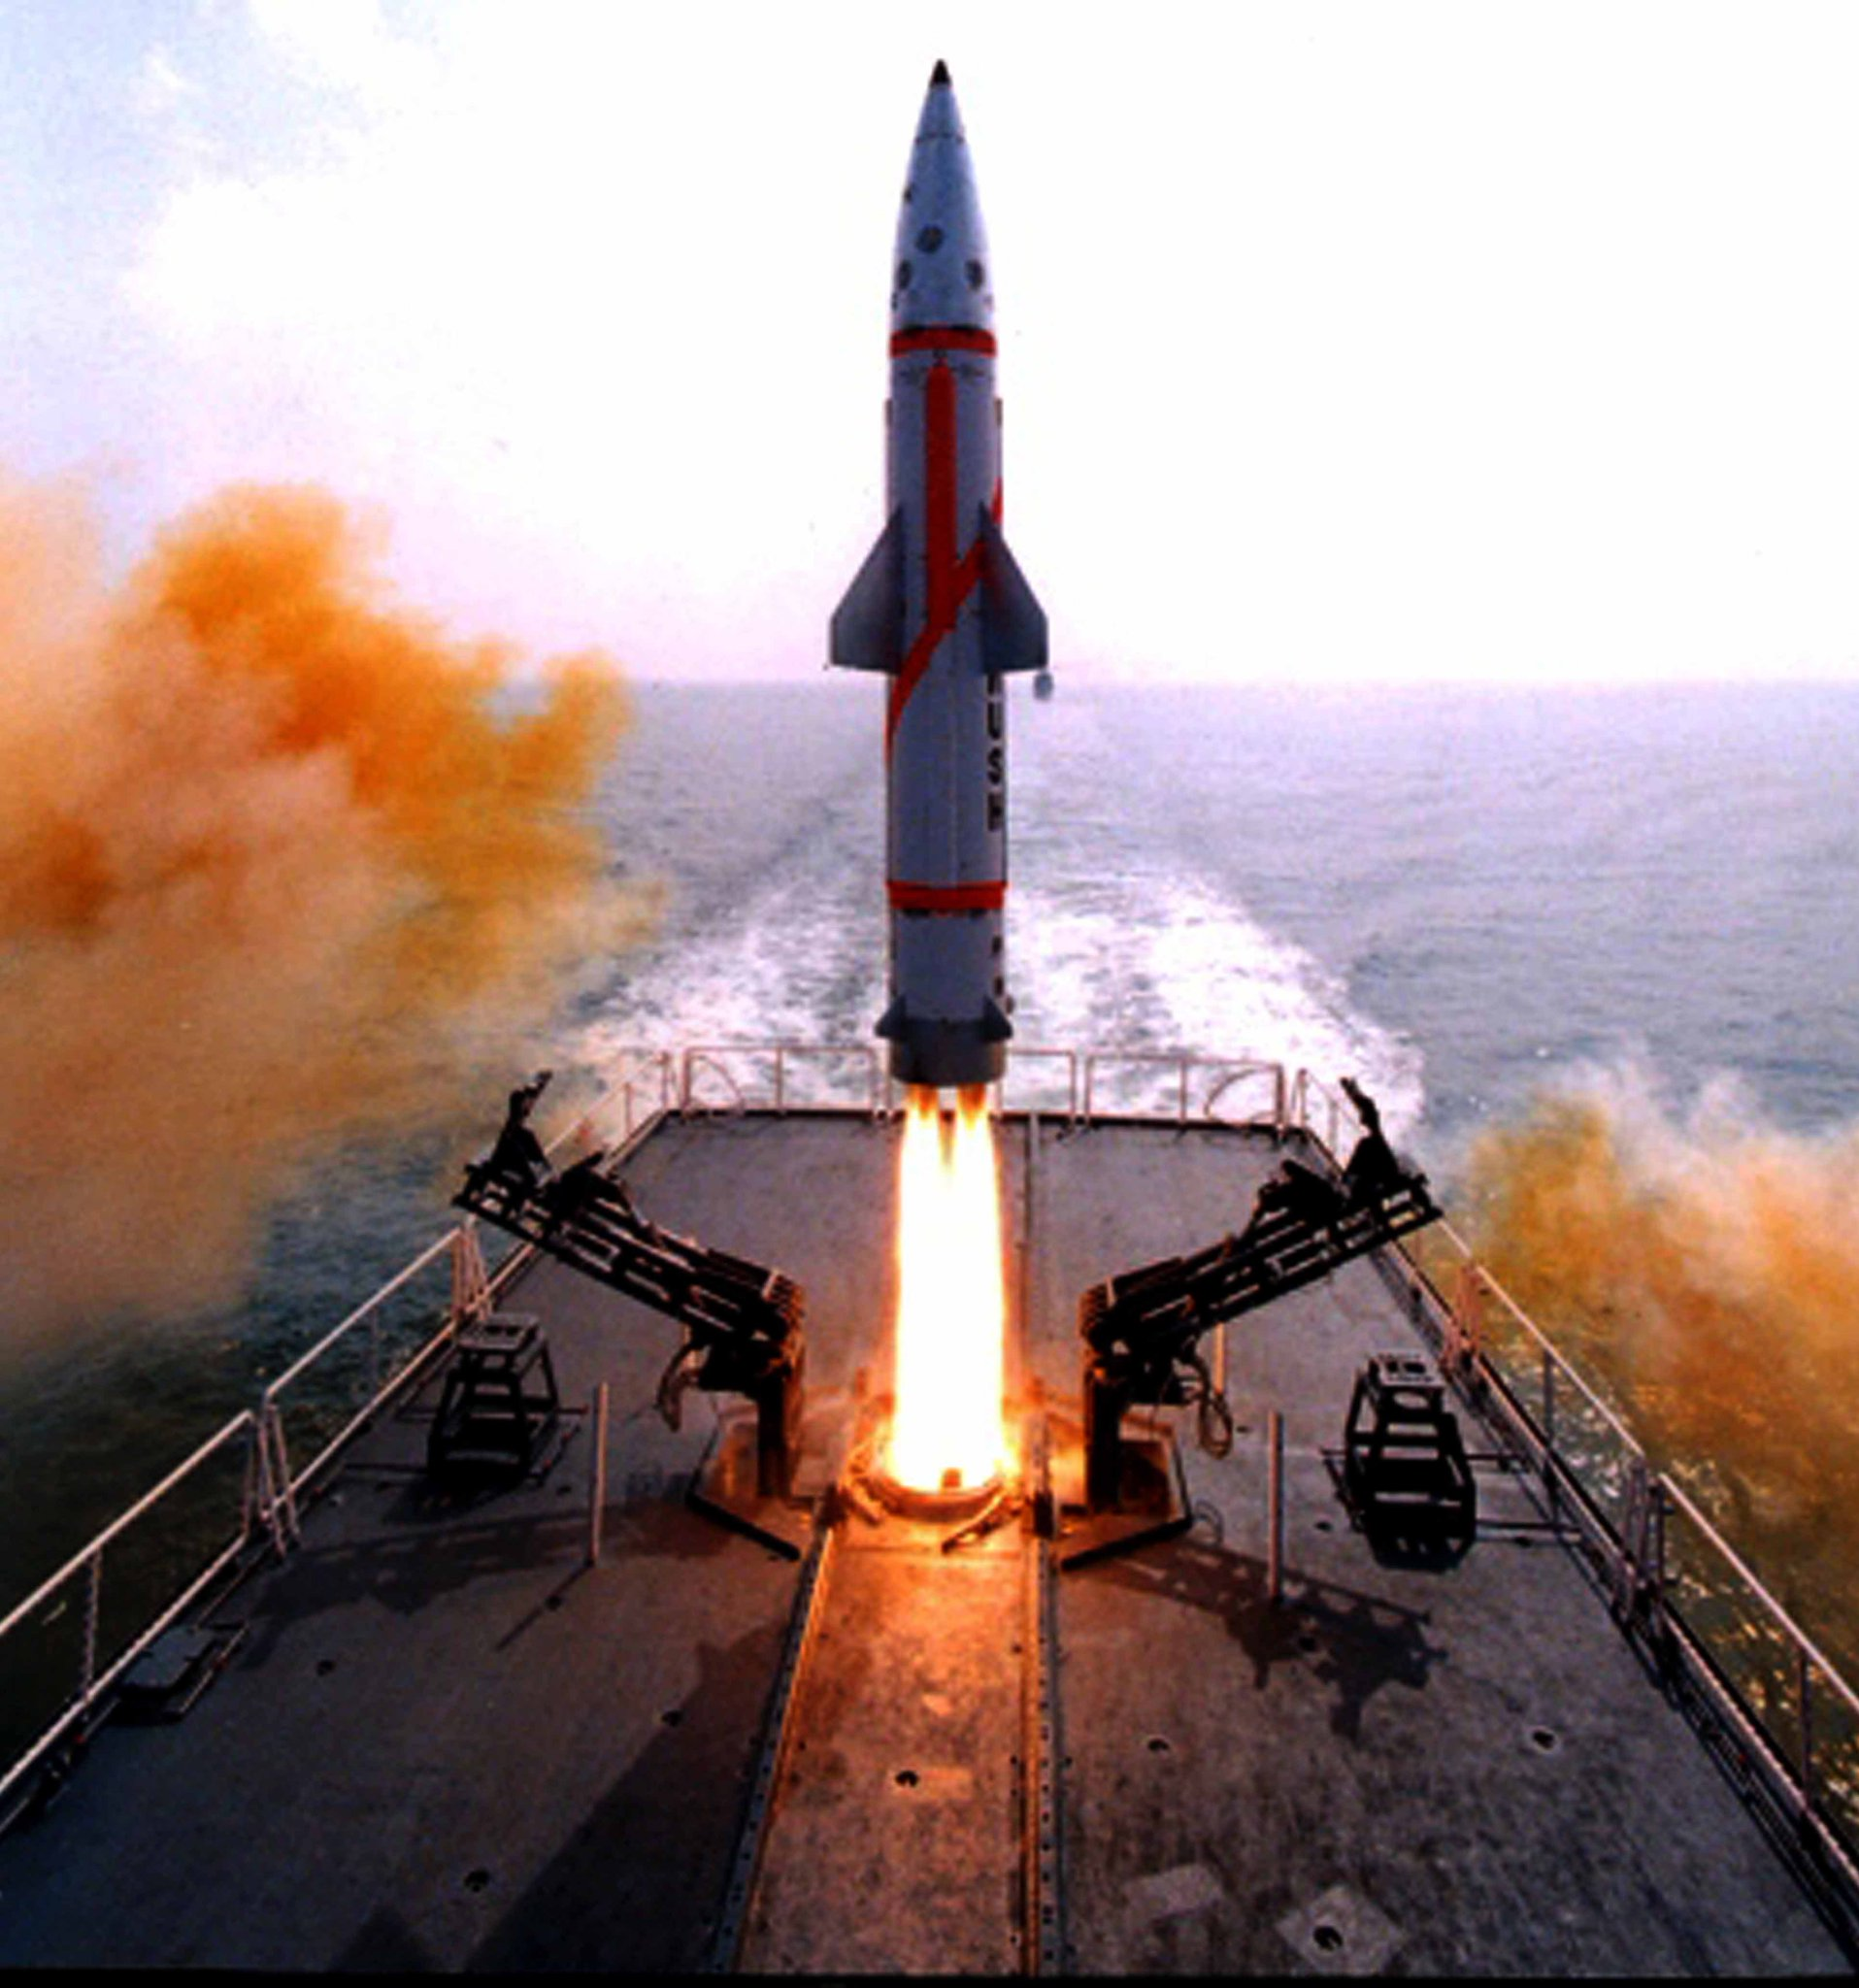 #India test fires nuclear-capable ballistic missile #Dhanush from naval warship https://t.co/SE09BK7UH4 https://t.co/Q922H17TNu